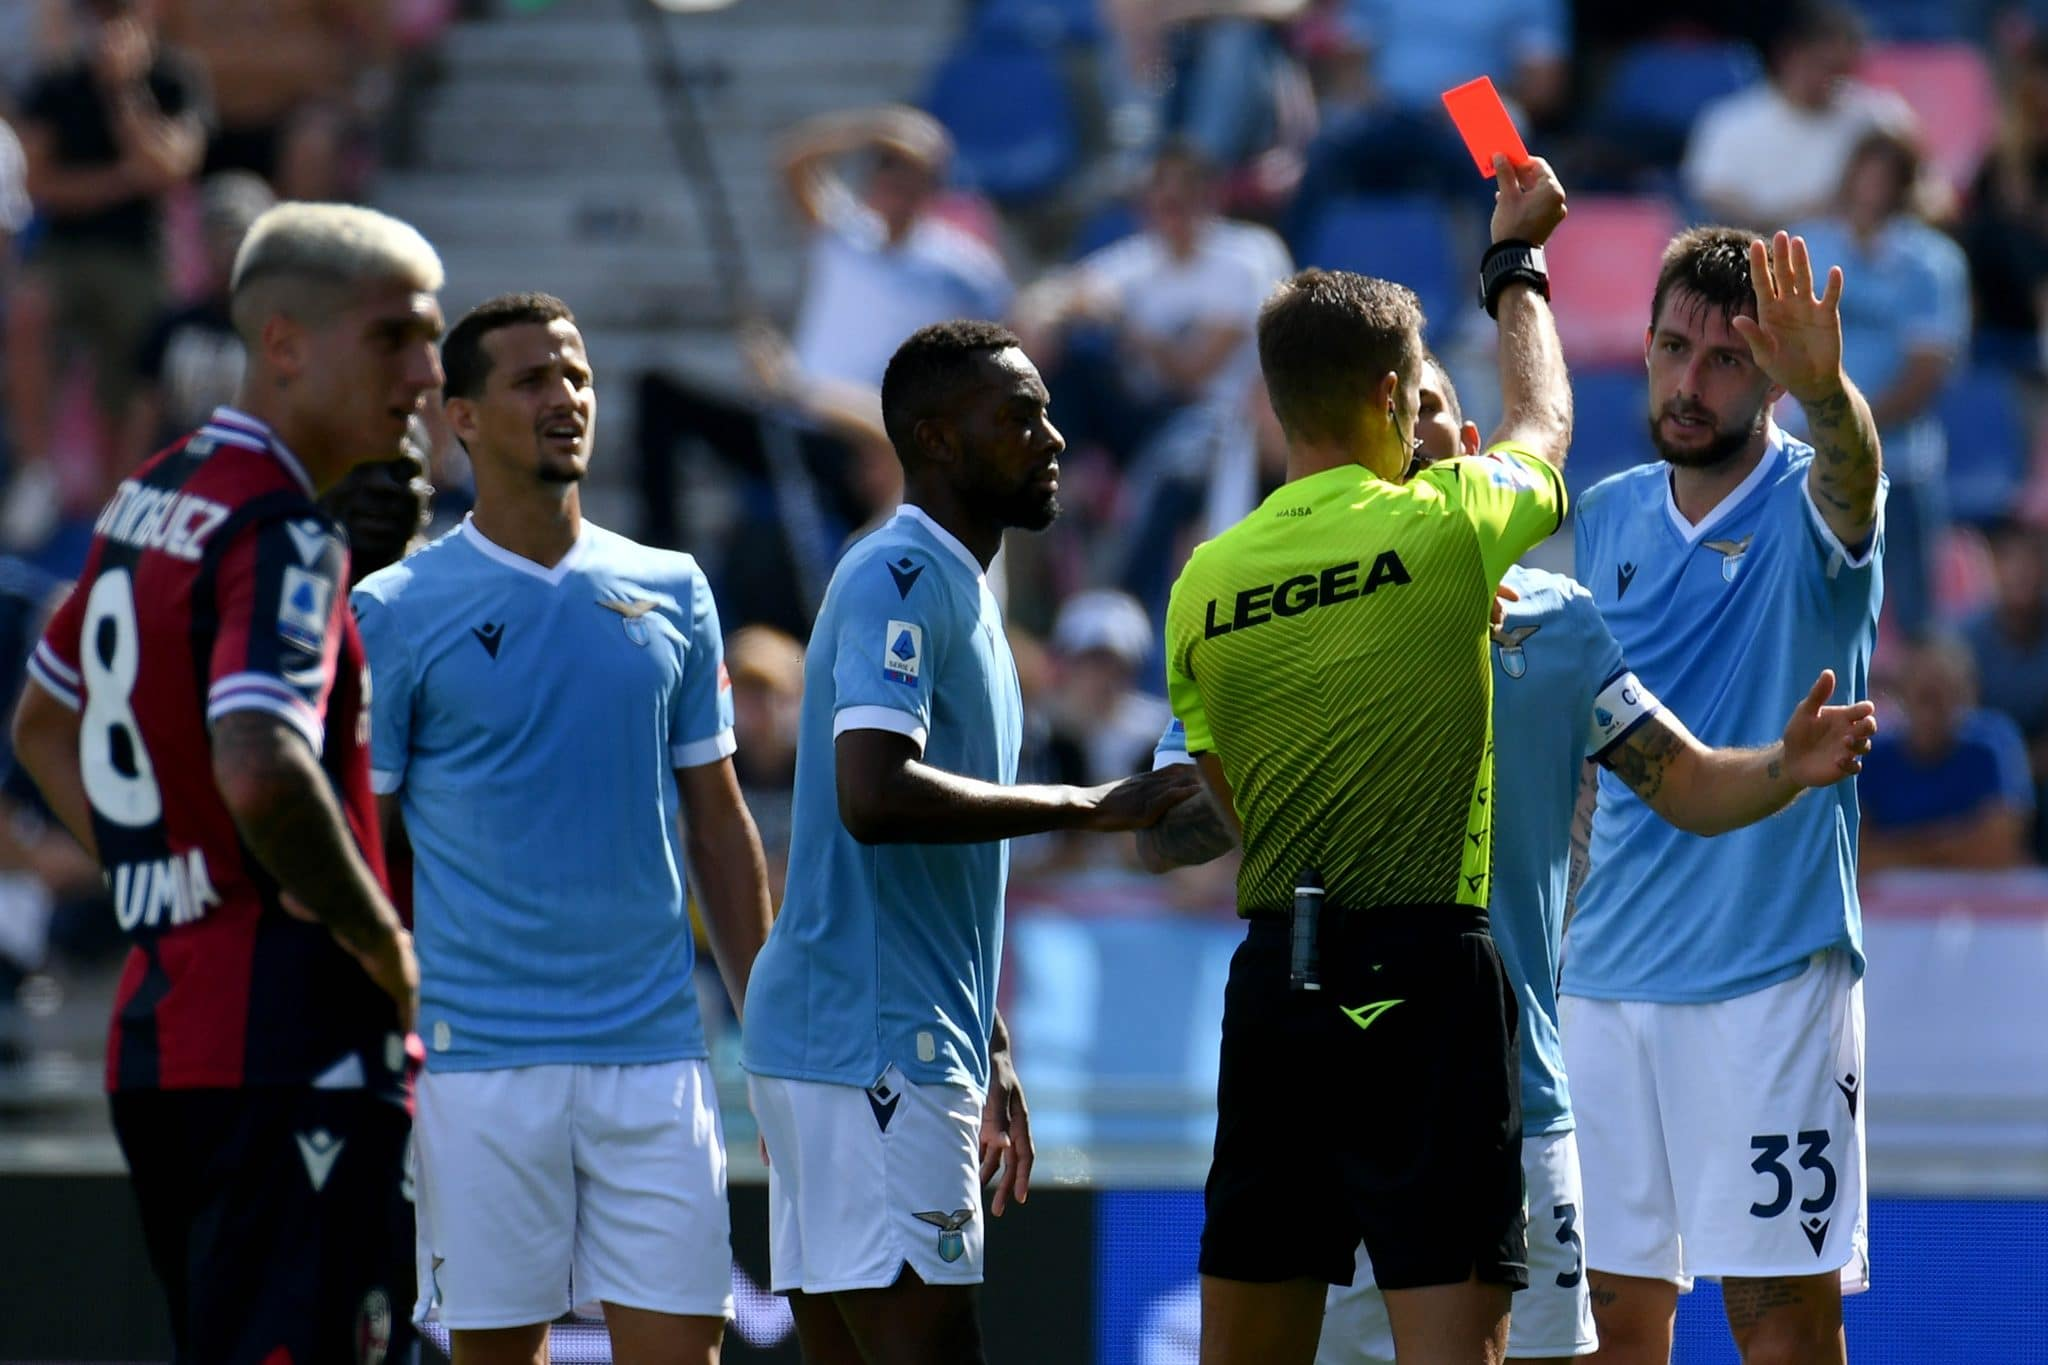 BOLOGNA, ITALY - OCTOBER 03: The refereee Daniele Massa show a red card Francesco Acerbi of SS Lazio  during the Serie A match between Bologna FC v SS Lazio at Stadio Renato Dall'Ara on October 03, 2021 in Bologna, Italy. (Photo by Marco Rosi - SS Lazio/Getty Images)